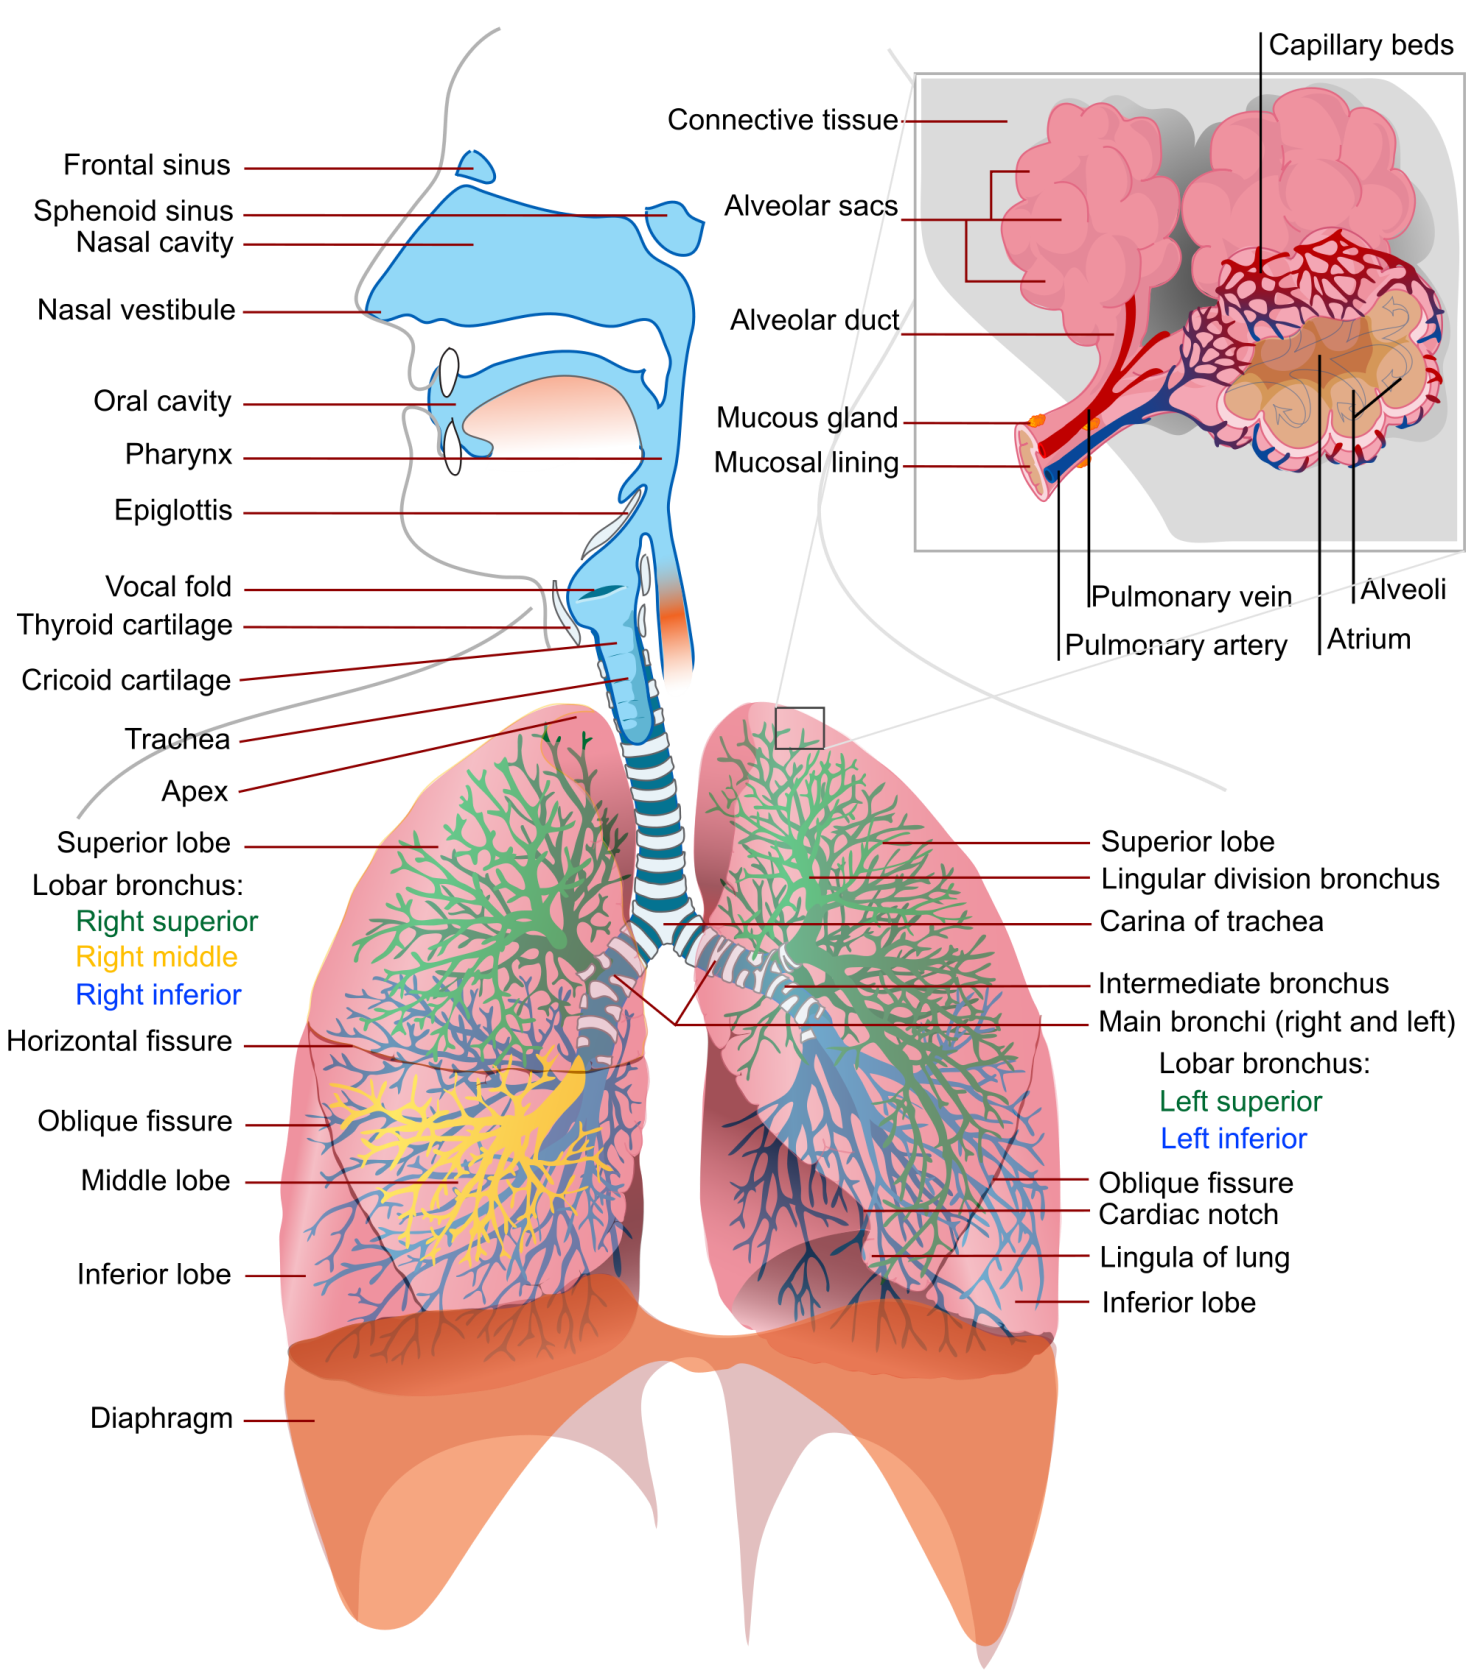 231 blood circulatory system figure very detailed image of the lungs it is not necessary or required to know all this detail but this is a fantastic image of the lungs wikipedia ccuart Gallery